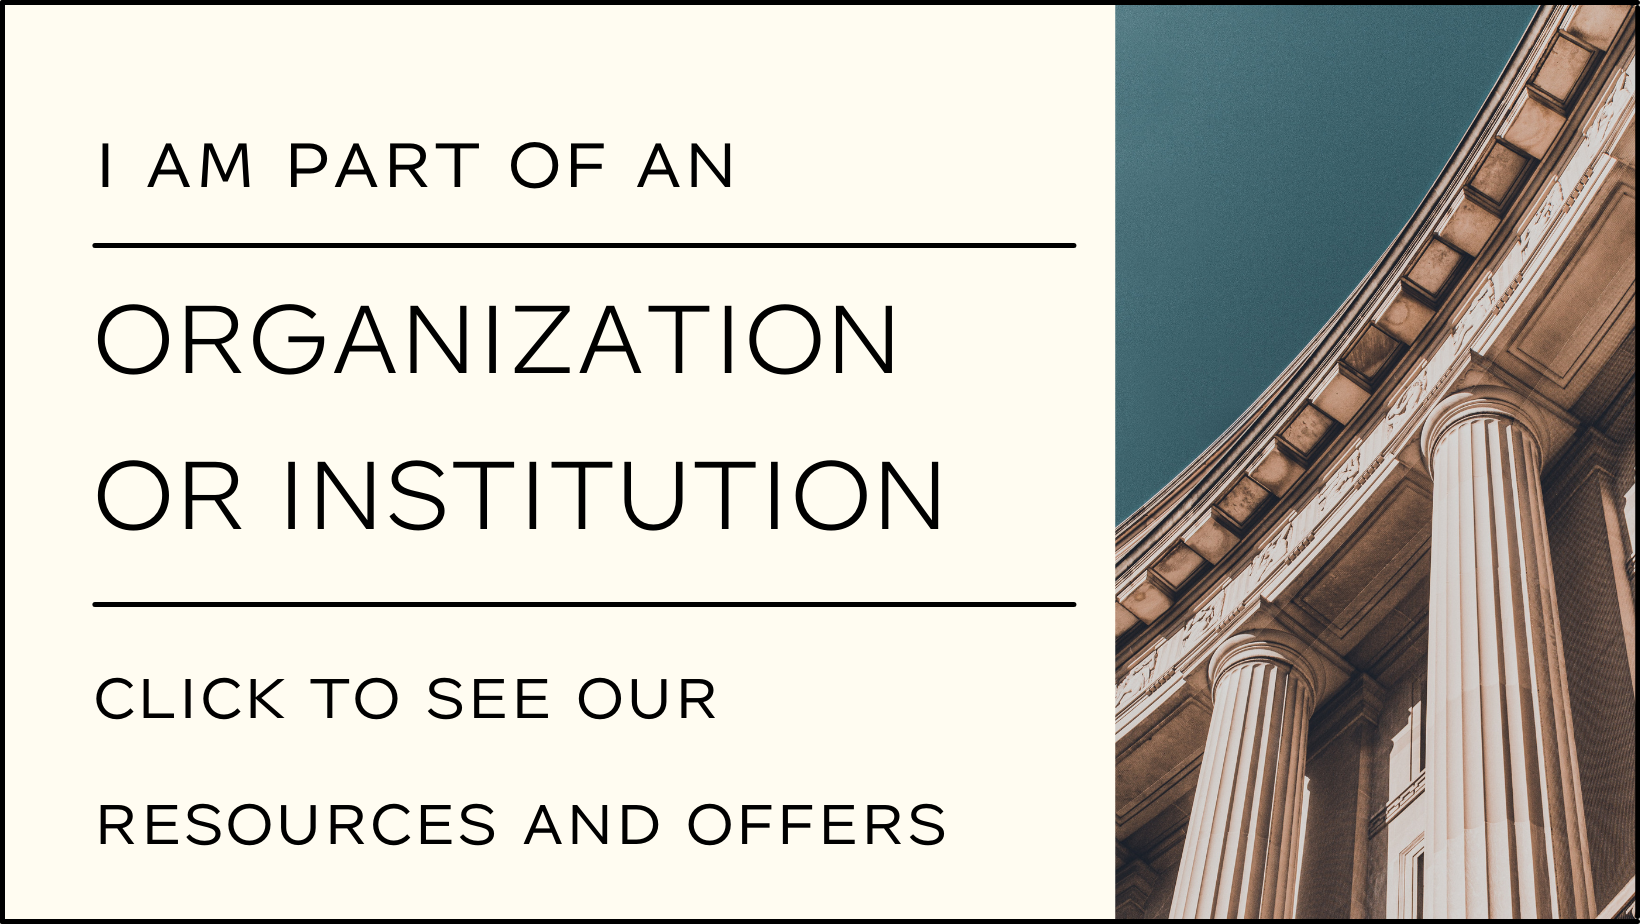 Writing Resources for Organizations and Institutions